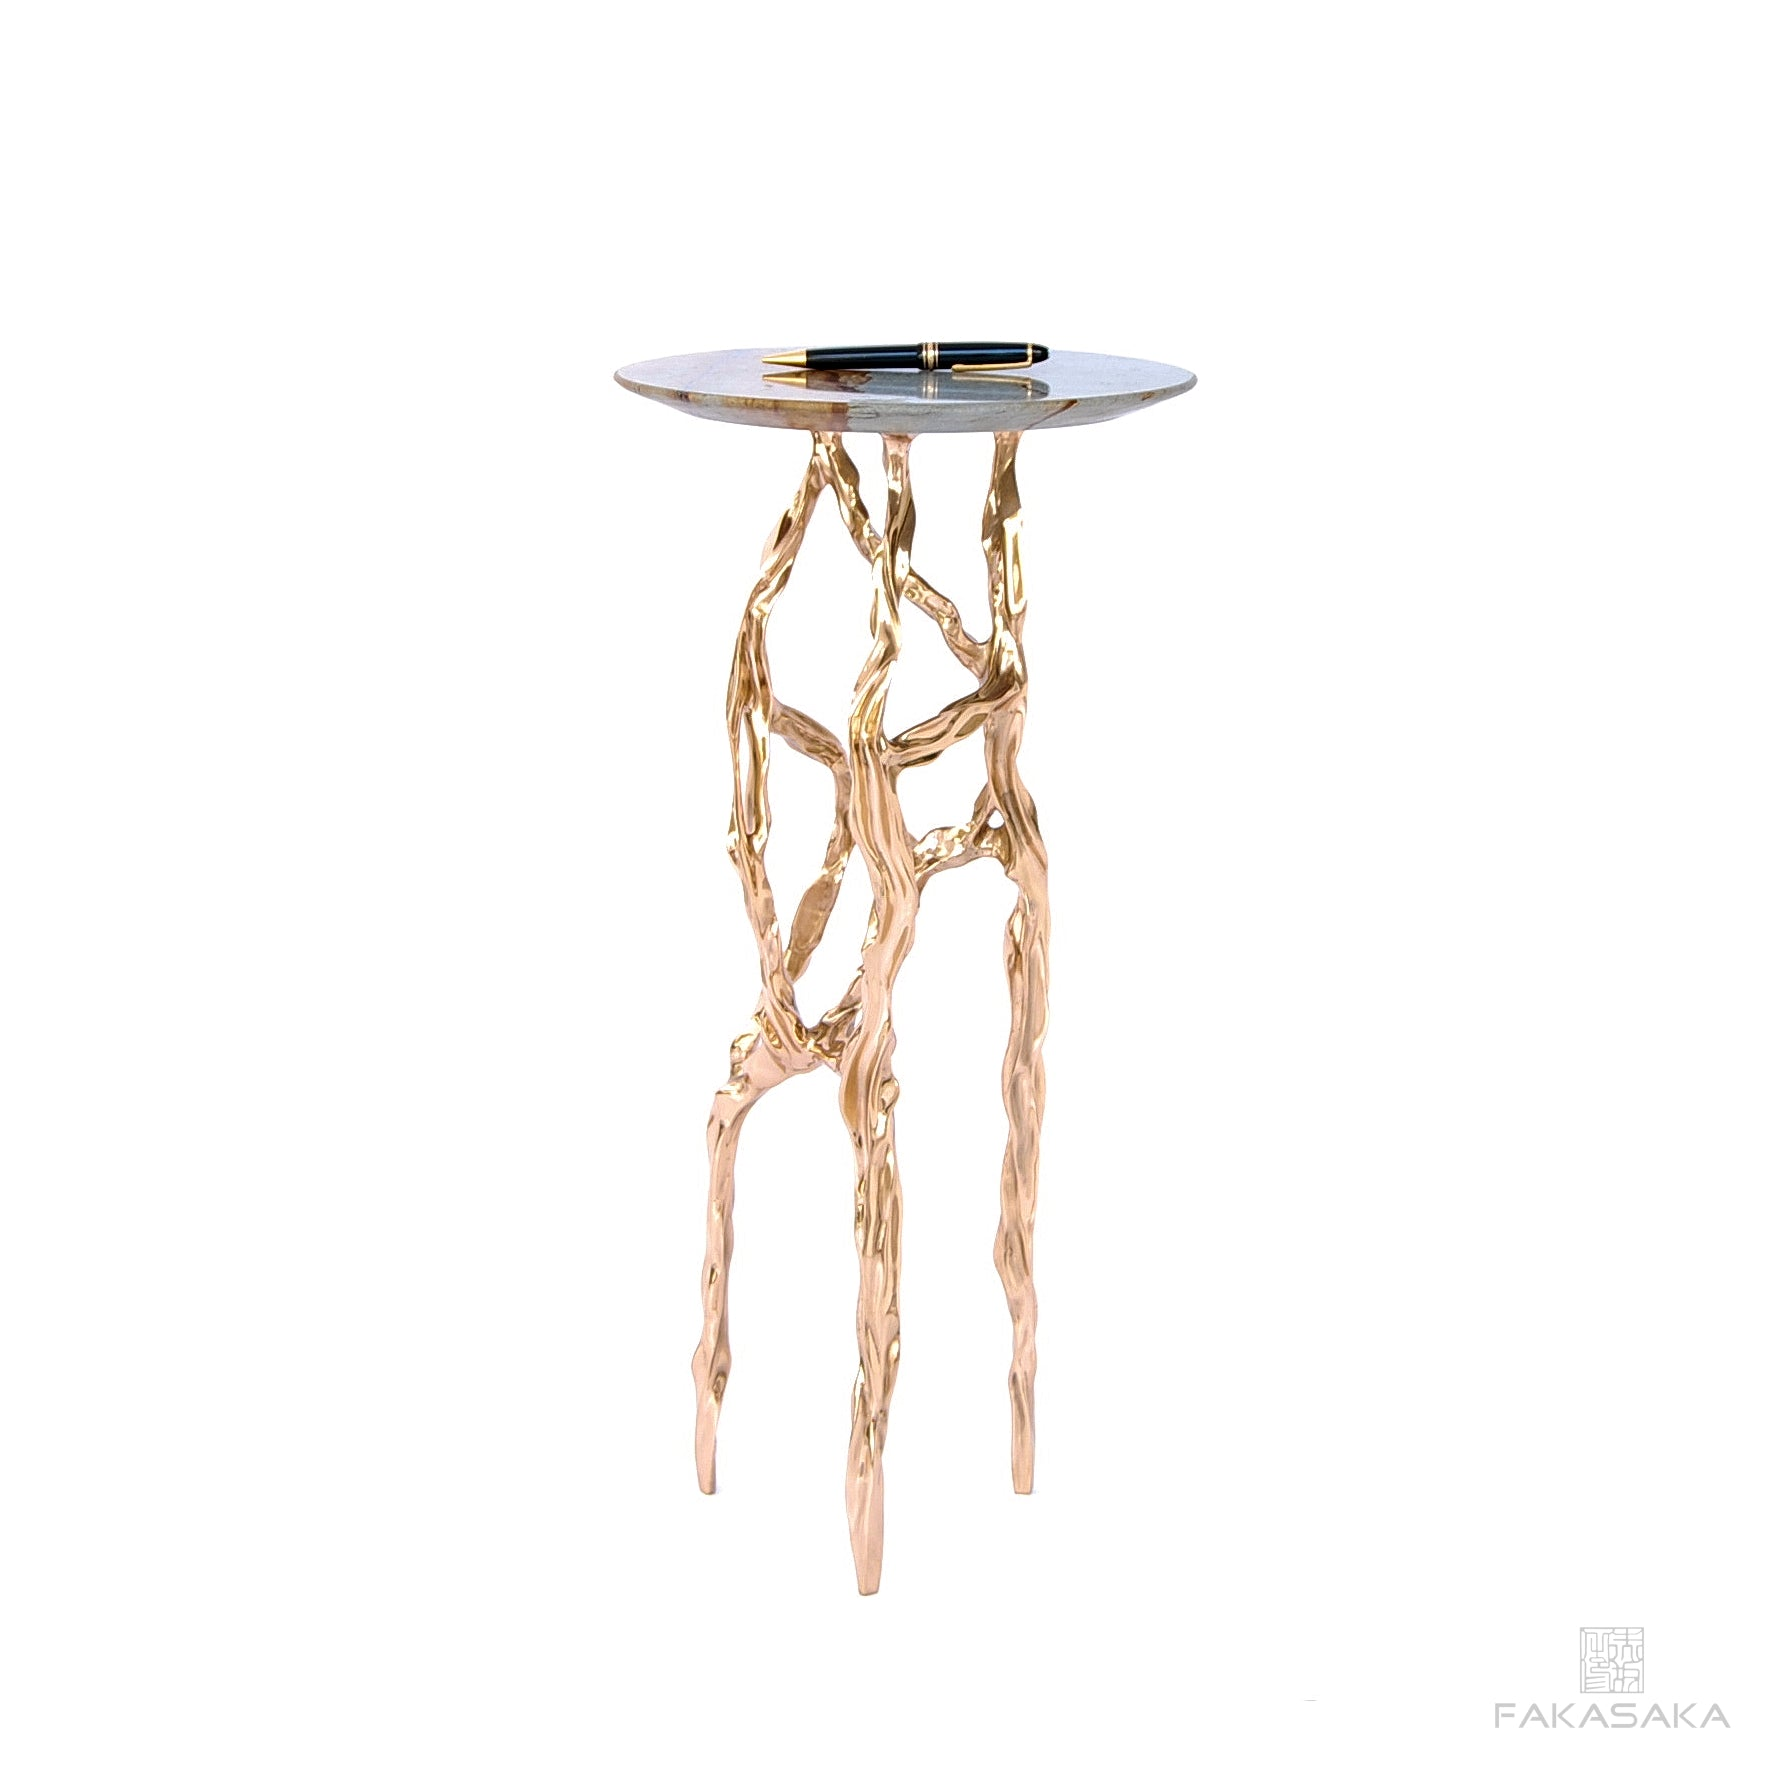 ALEXIA DRINK TABLE<br><br>BLUE MARE QUARTZITE<br>POLISHED BRONZE